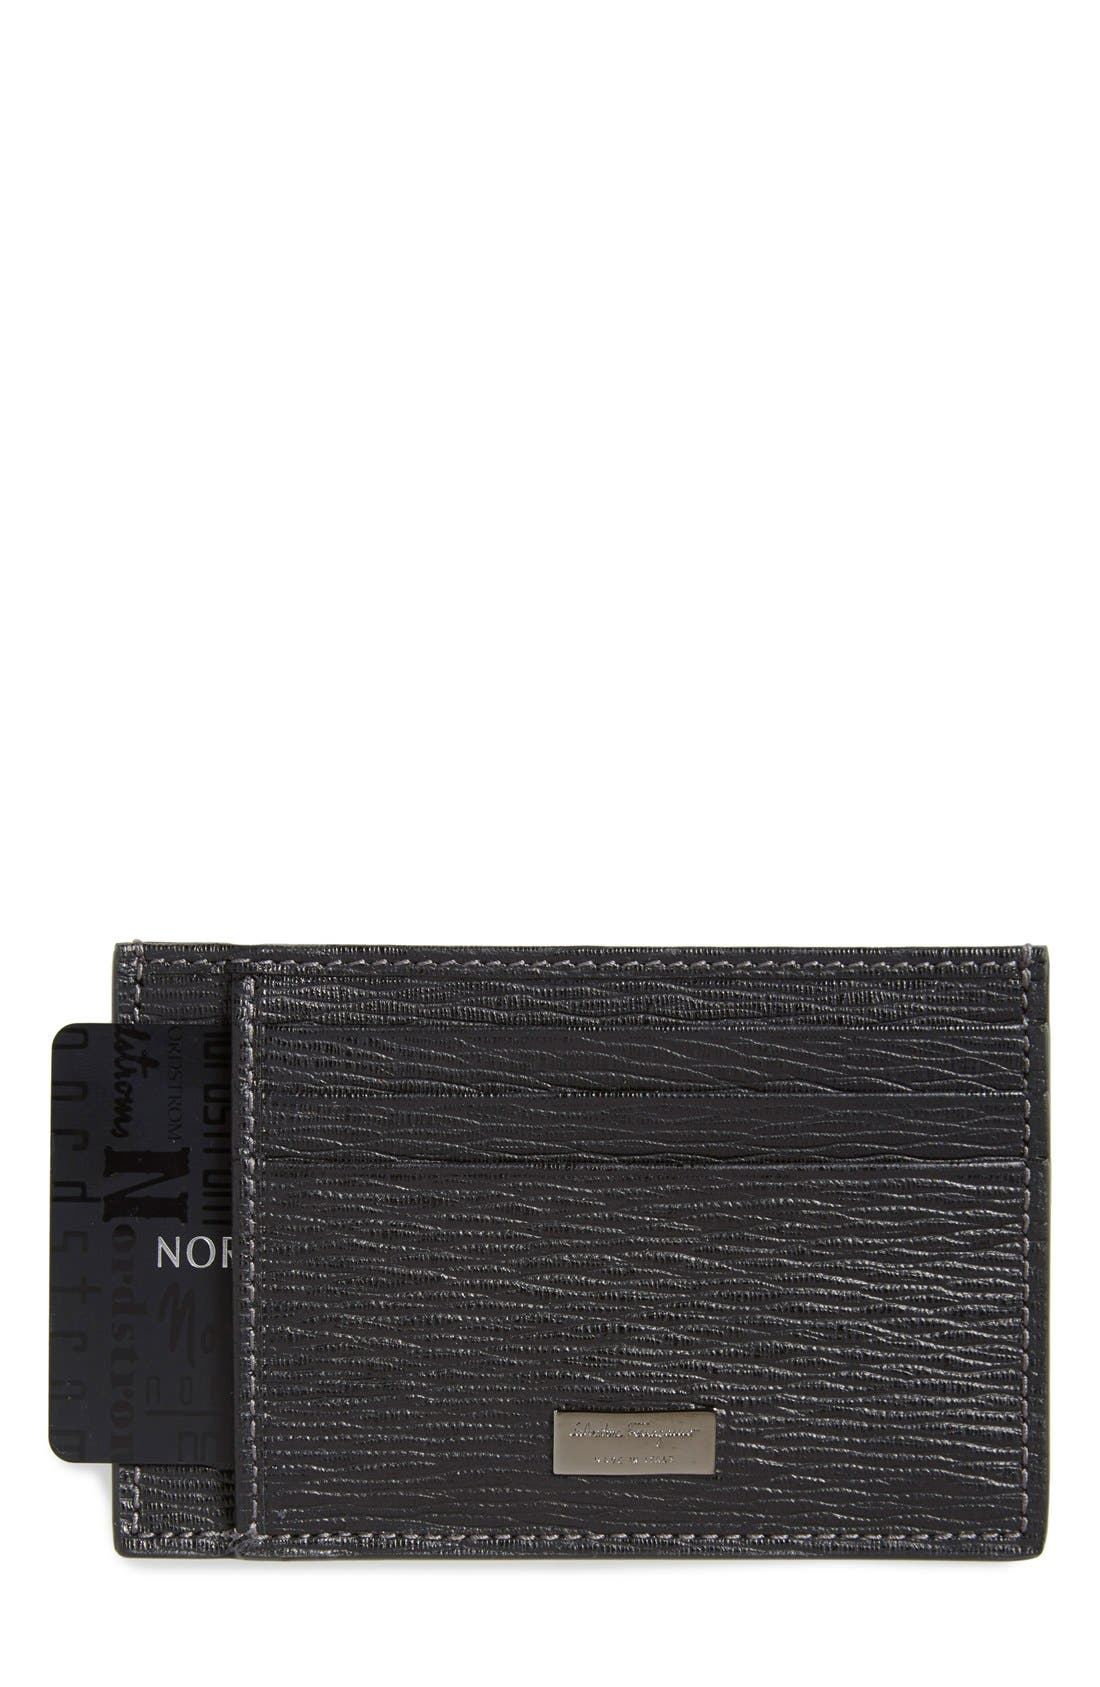 Salvatore Ferragamo 'Revival' Card Case